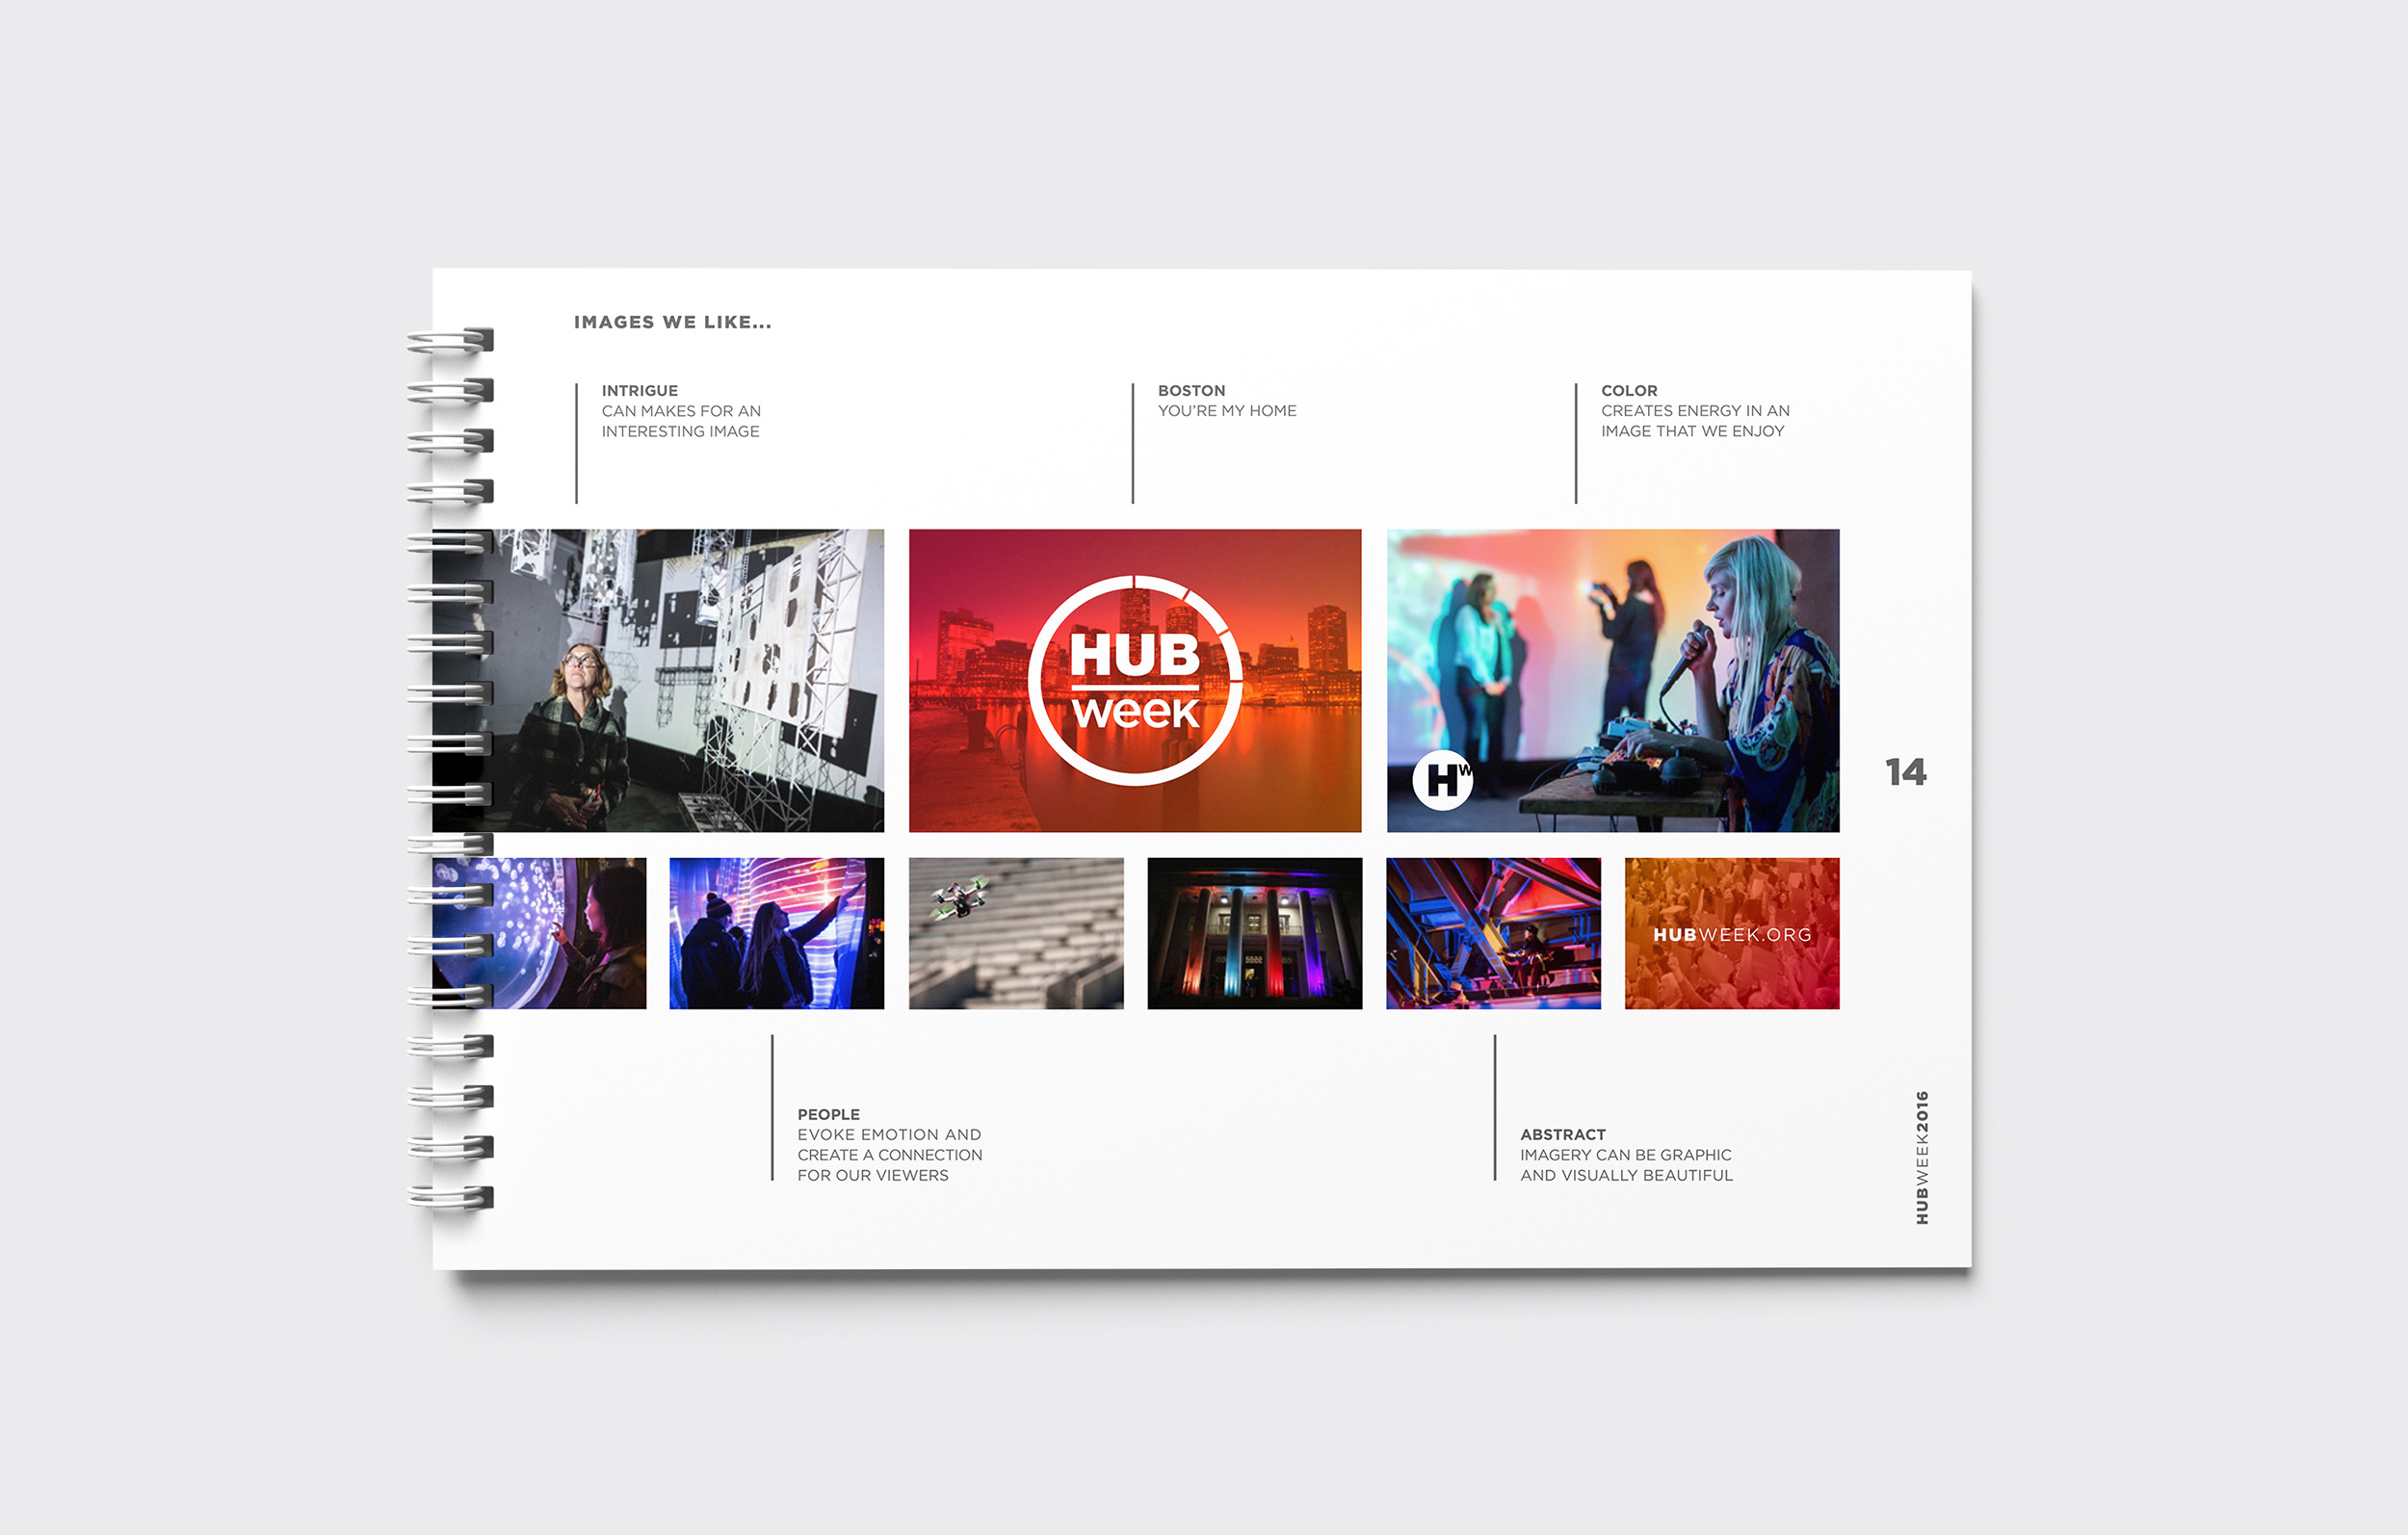 HUBweek Brand Guidelines Imagery